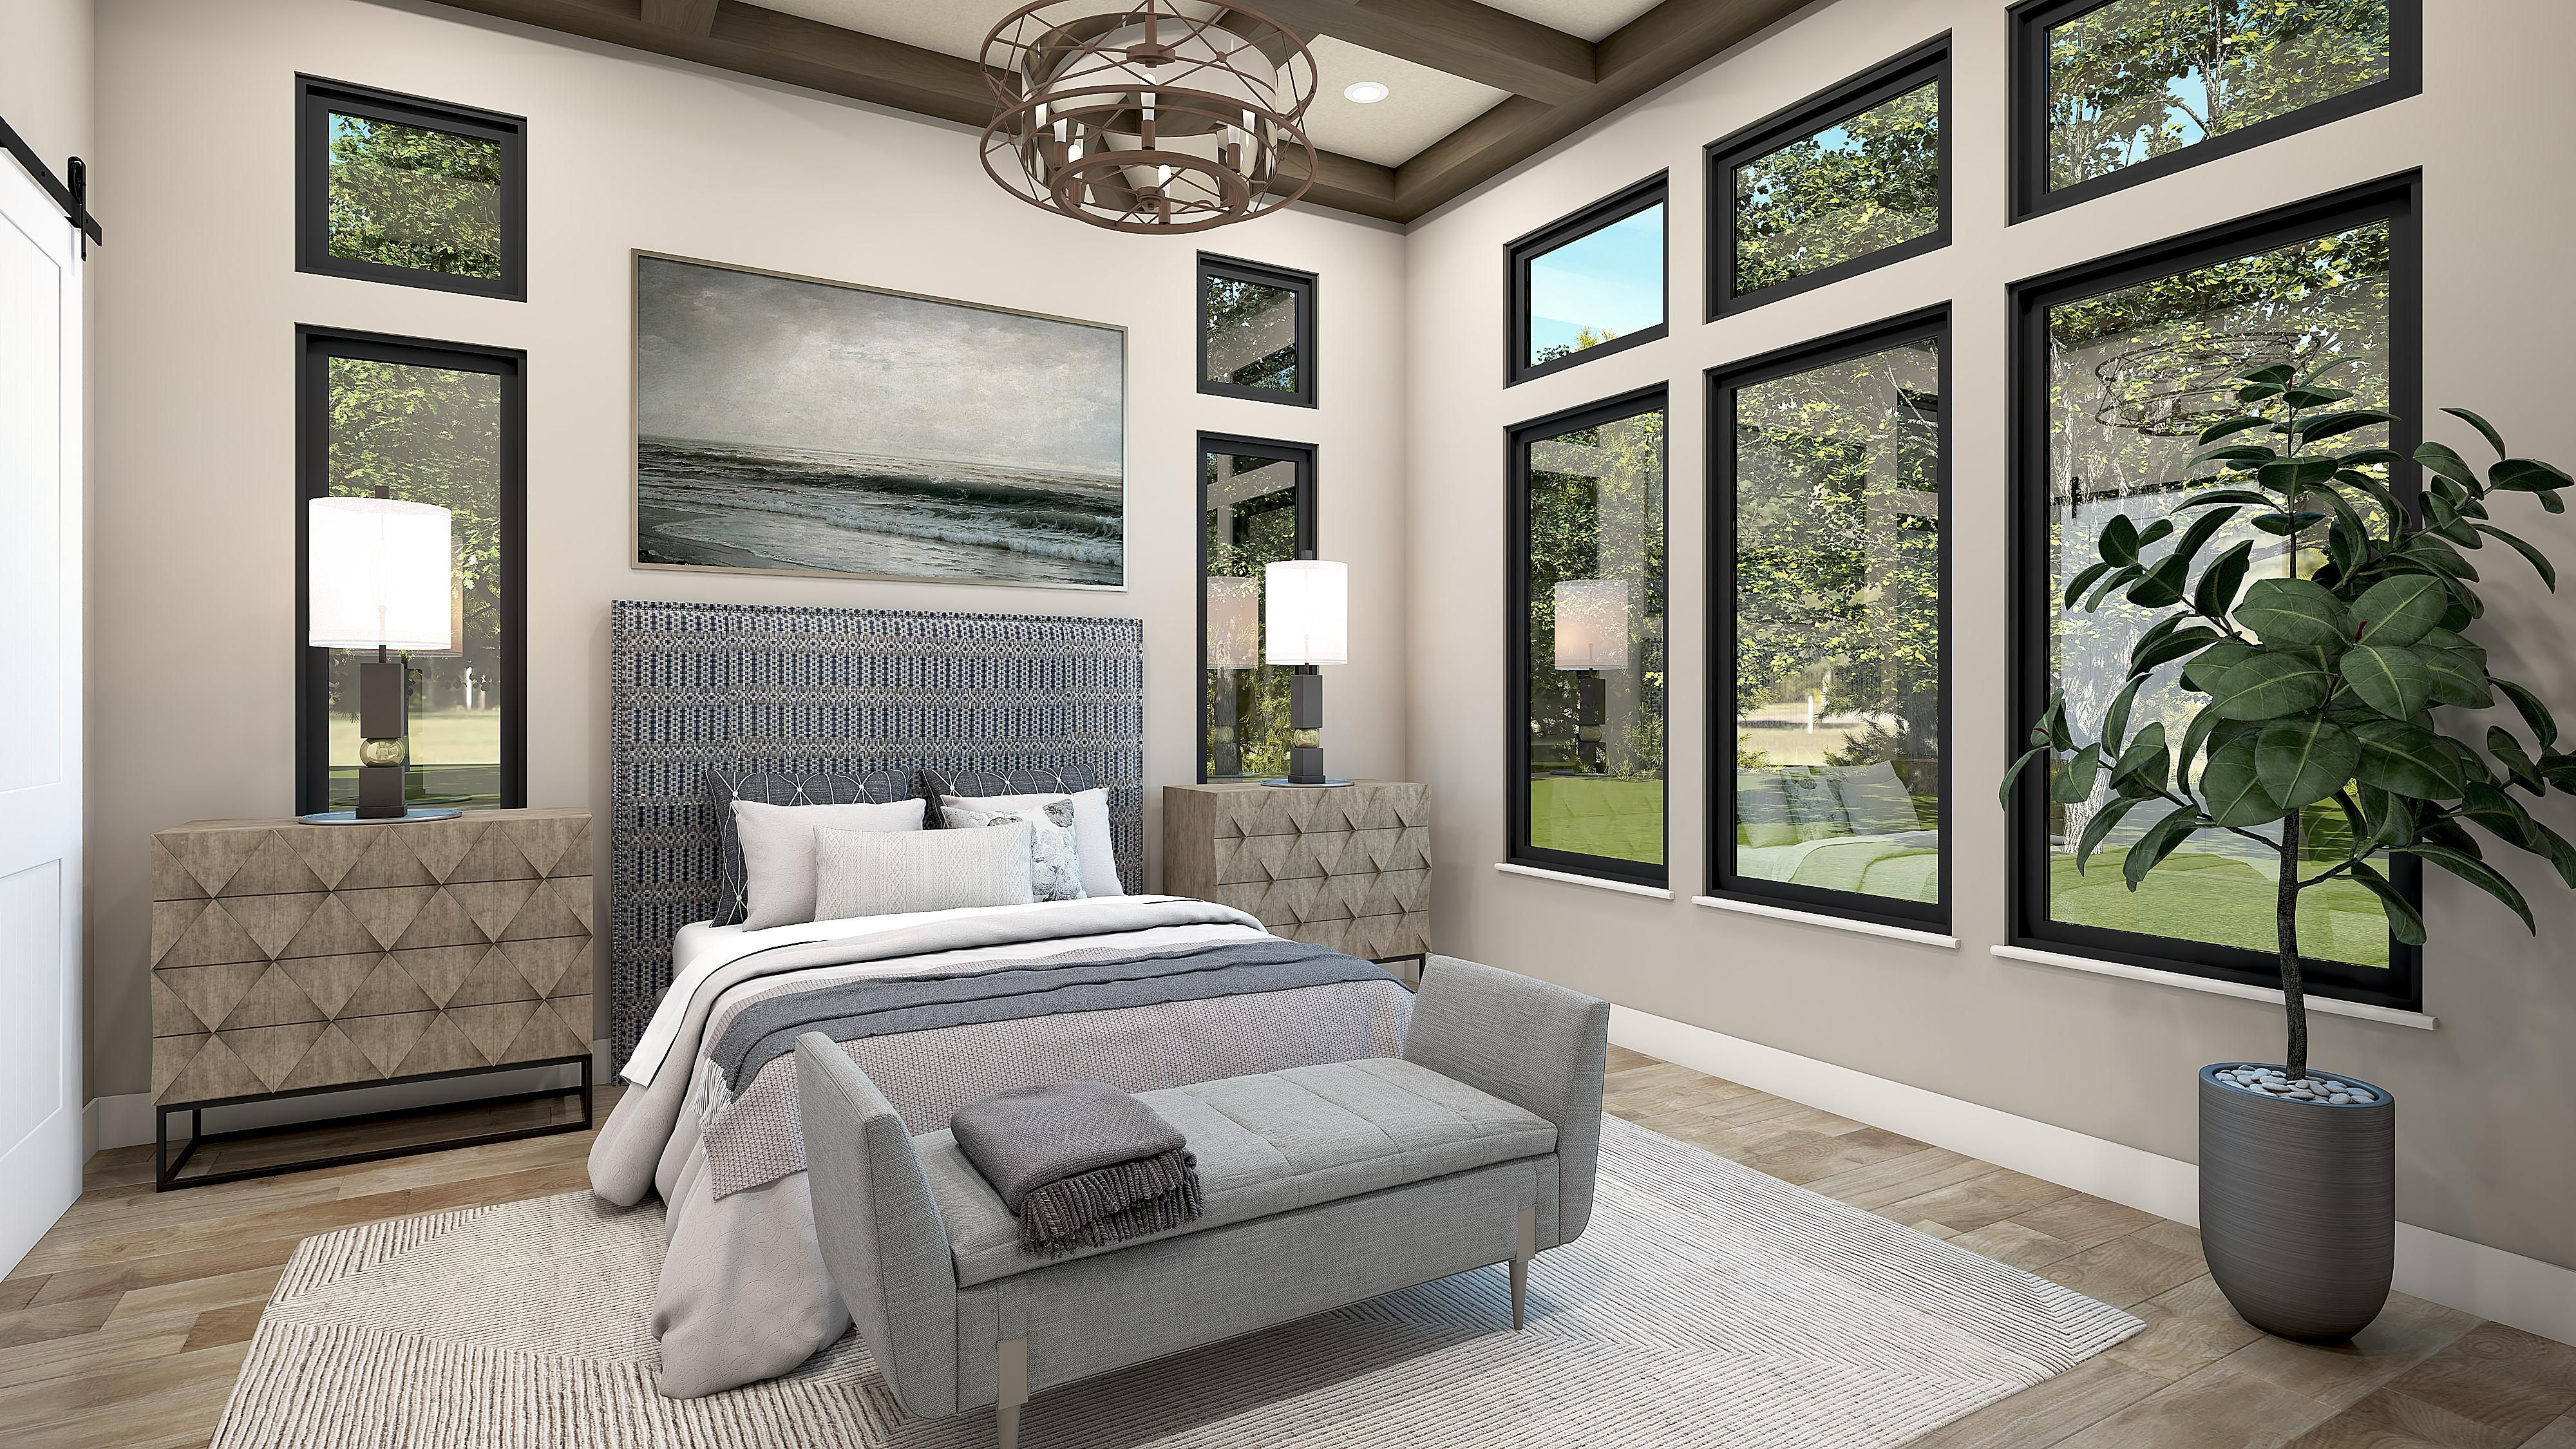 Bedroom featured in the Plan 1-C By Copper Valley  in Stockton-Lodi, CA